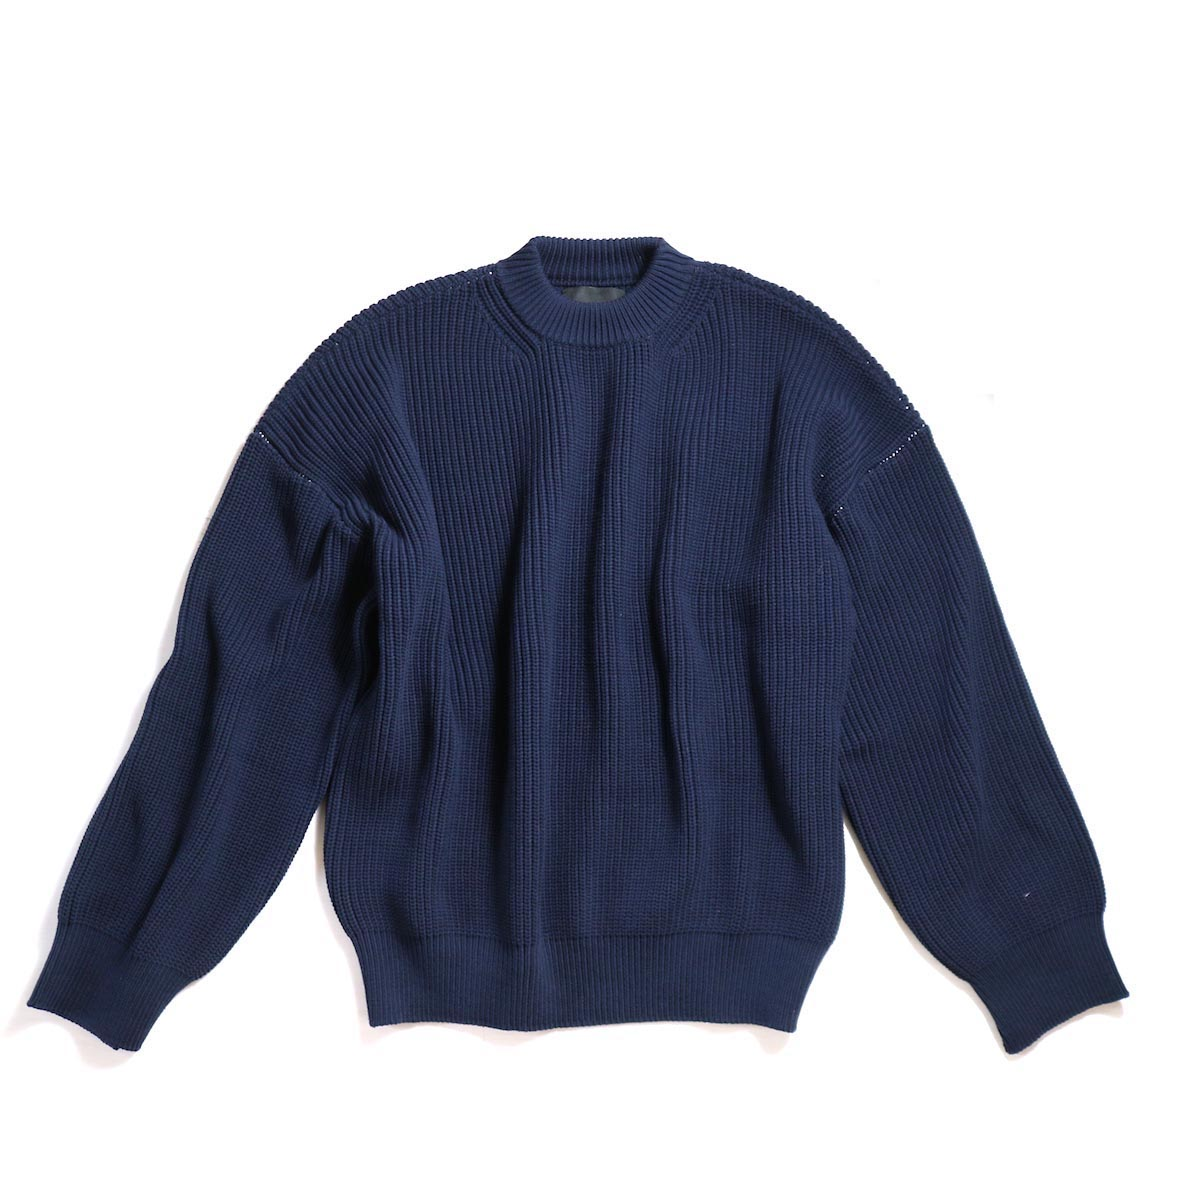 UNUSED / US1412 BIG SIZE 5G KNIT -NAVY